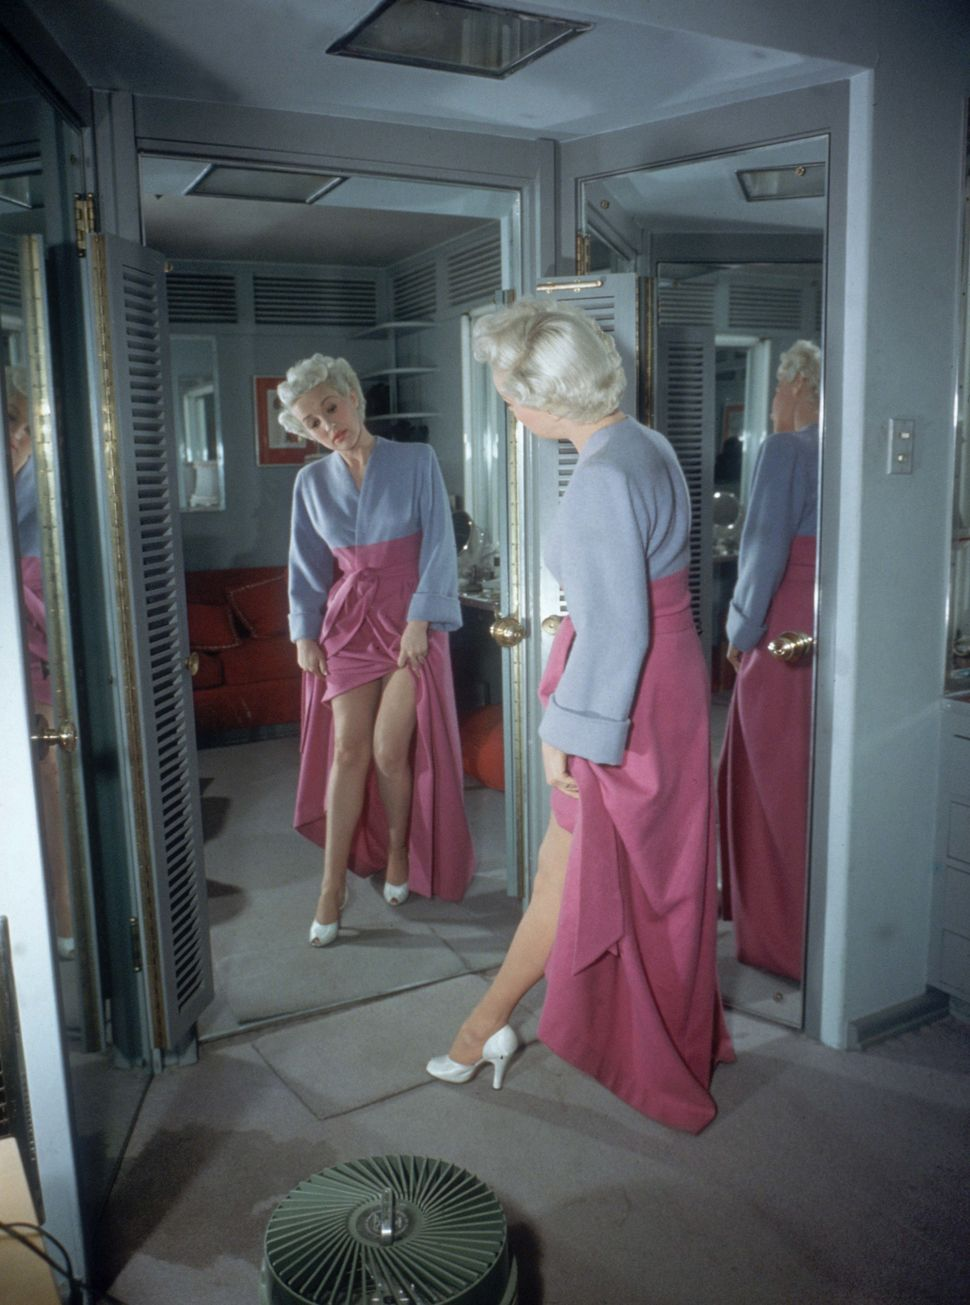 American actor and pin-up girl Betty Grable lifts her robe to look at her legs in a mirror on April 15, 1950.